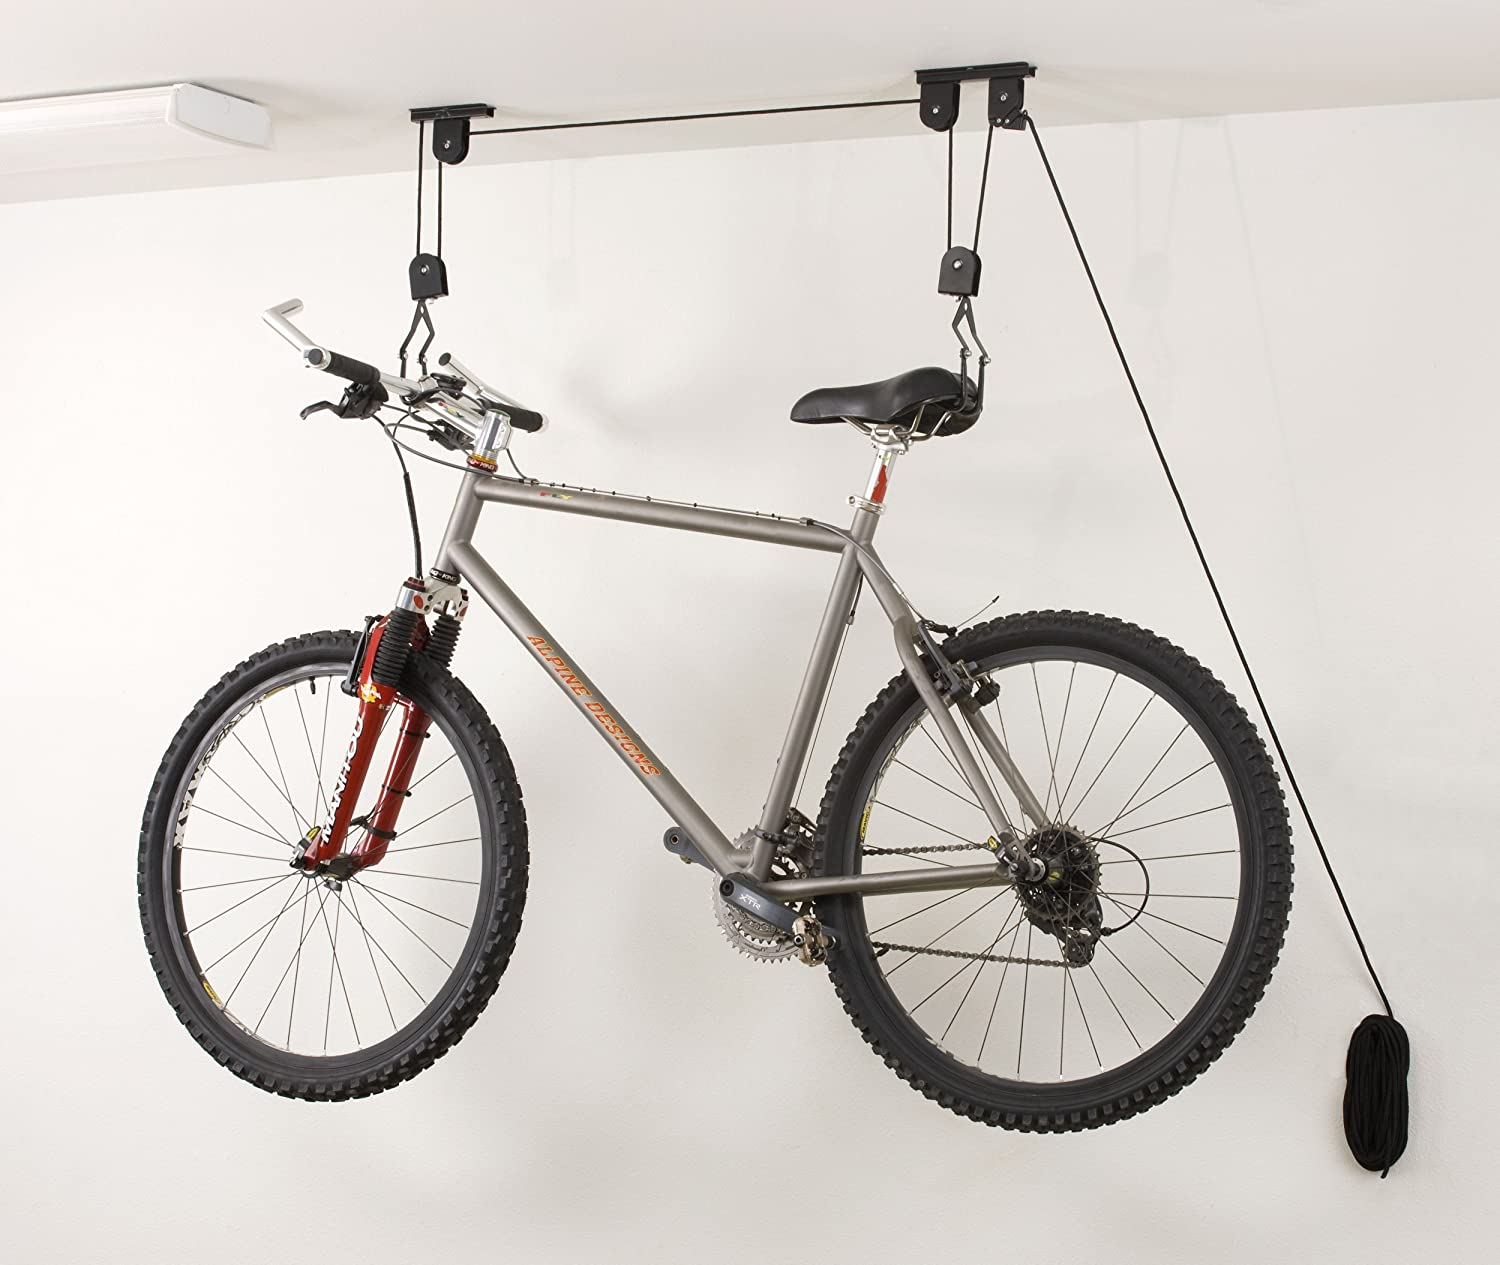 & Racor PBH-1R Ceiling-Mounted Bike Lift - Bike Storage Racks - Amazon.com